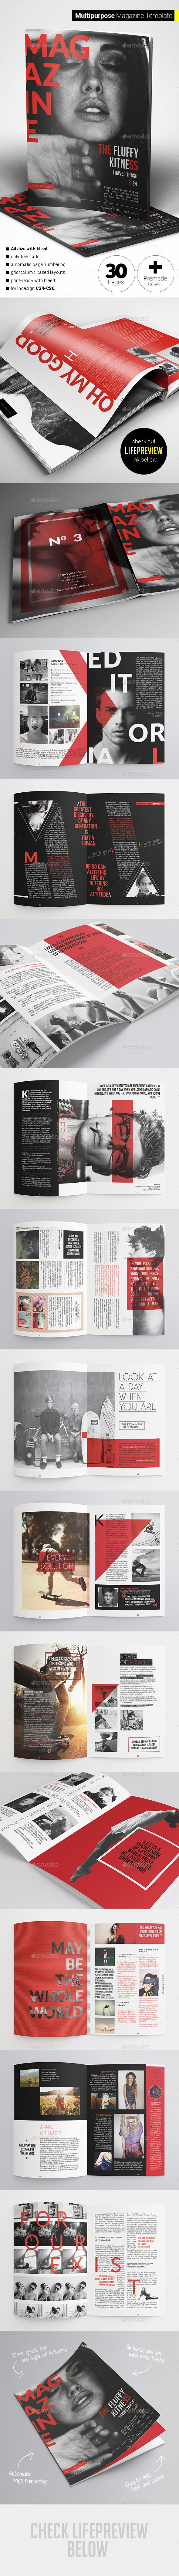 Comfortable 10 Best Resume Designs Tall 10 Best Resume Writers Flat 15 Year Old Resume Example 16th Birthday Invitation Templates Old 18 Year Old Resumes Pink2 Page Resume Design 25  Best Ideas About Magazine Template On Pinterest | Magazine ..